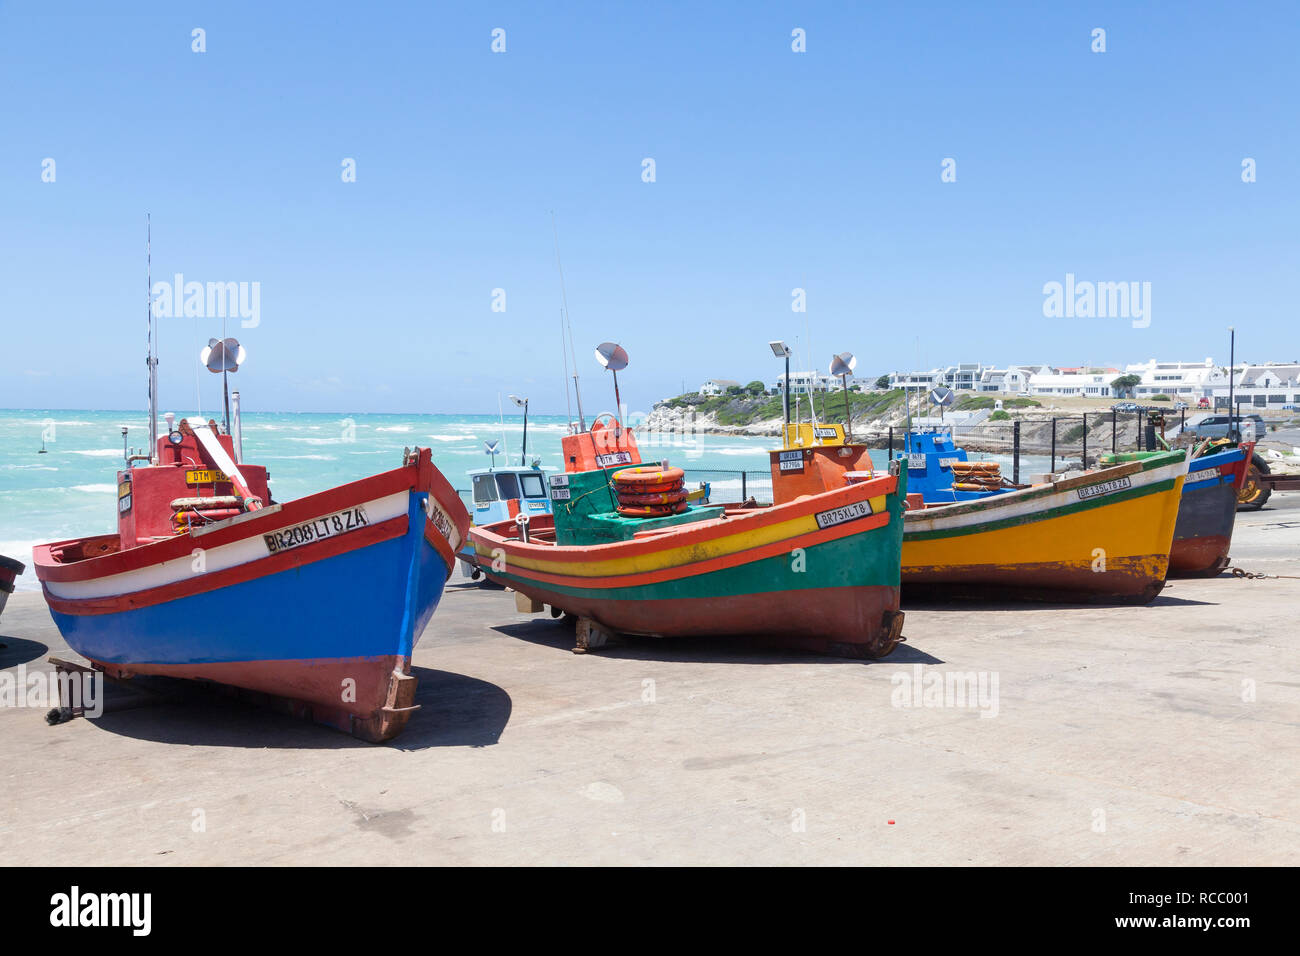 Colourful old wooden fishing boats on the slipway  in the fishing village of Arniston, Agulhas, Western Cape, South Africa, a popular tourist destinat Stock Photo